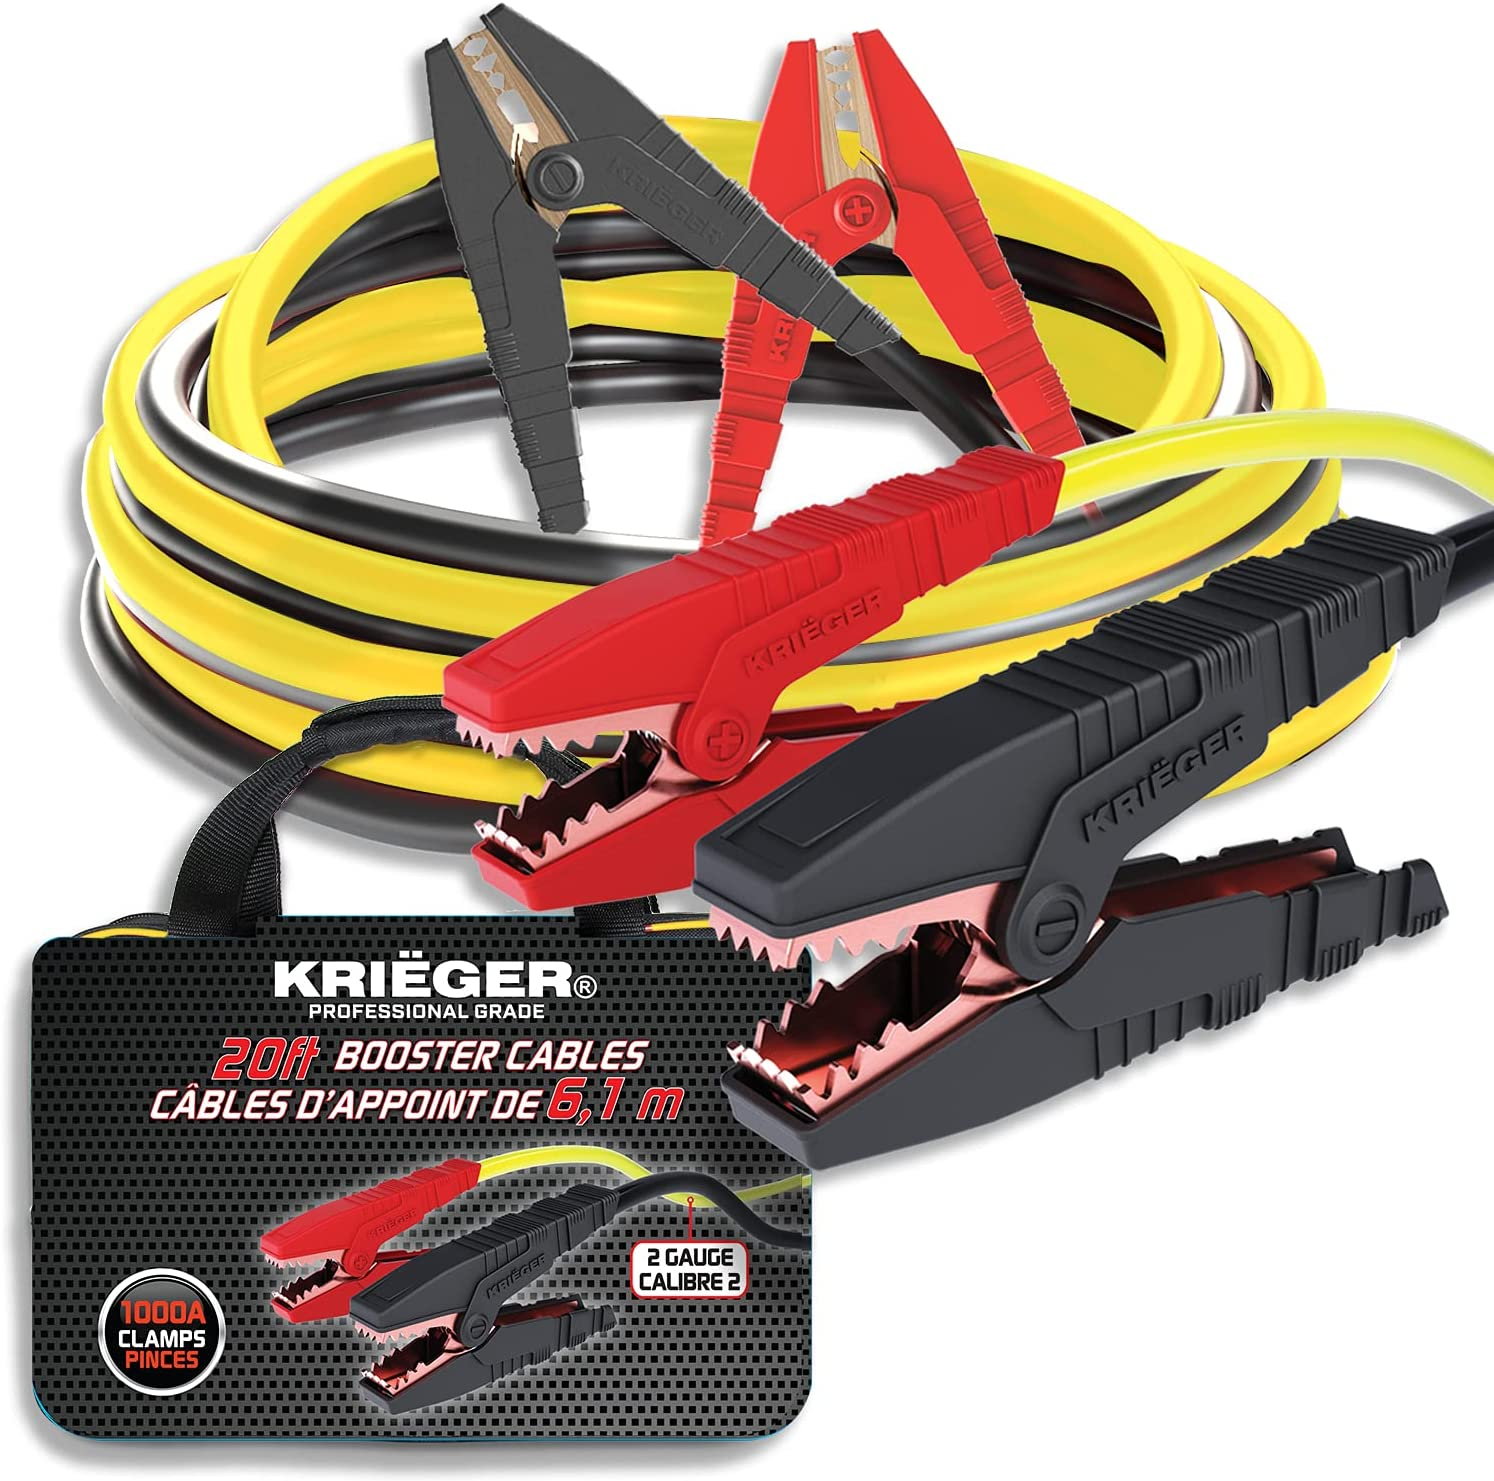 Krieger Jumper Oklahoma City Mall Cables for specialty shop Car Duty Battery Boo Heavy Automotive